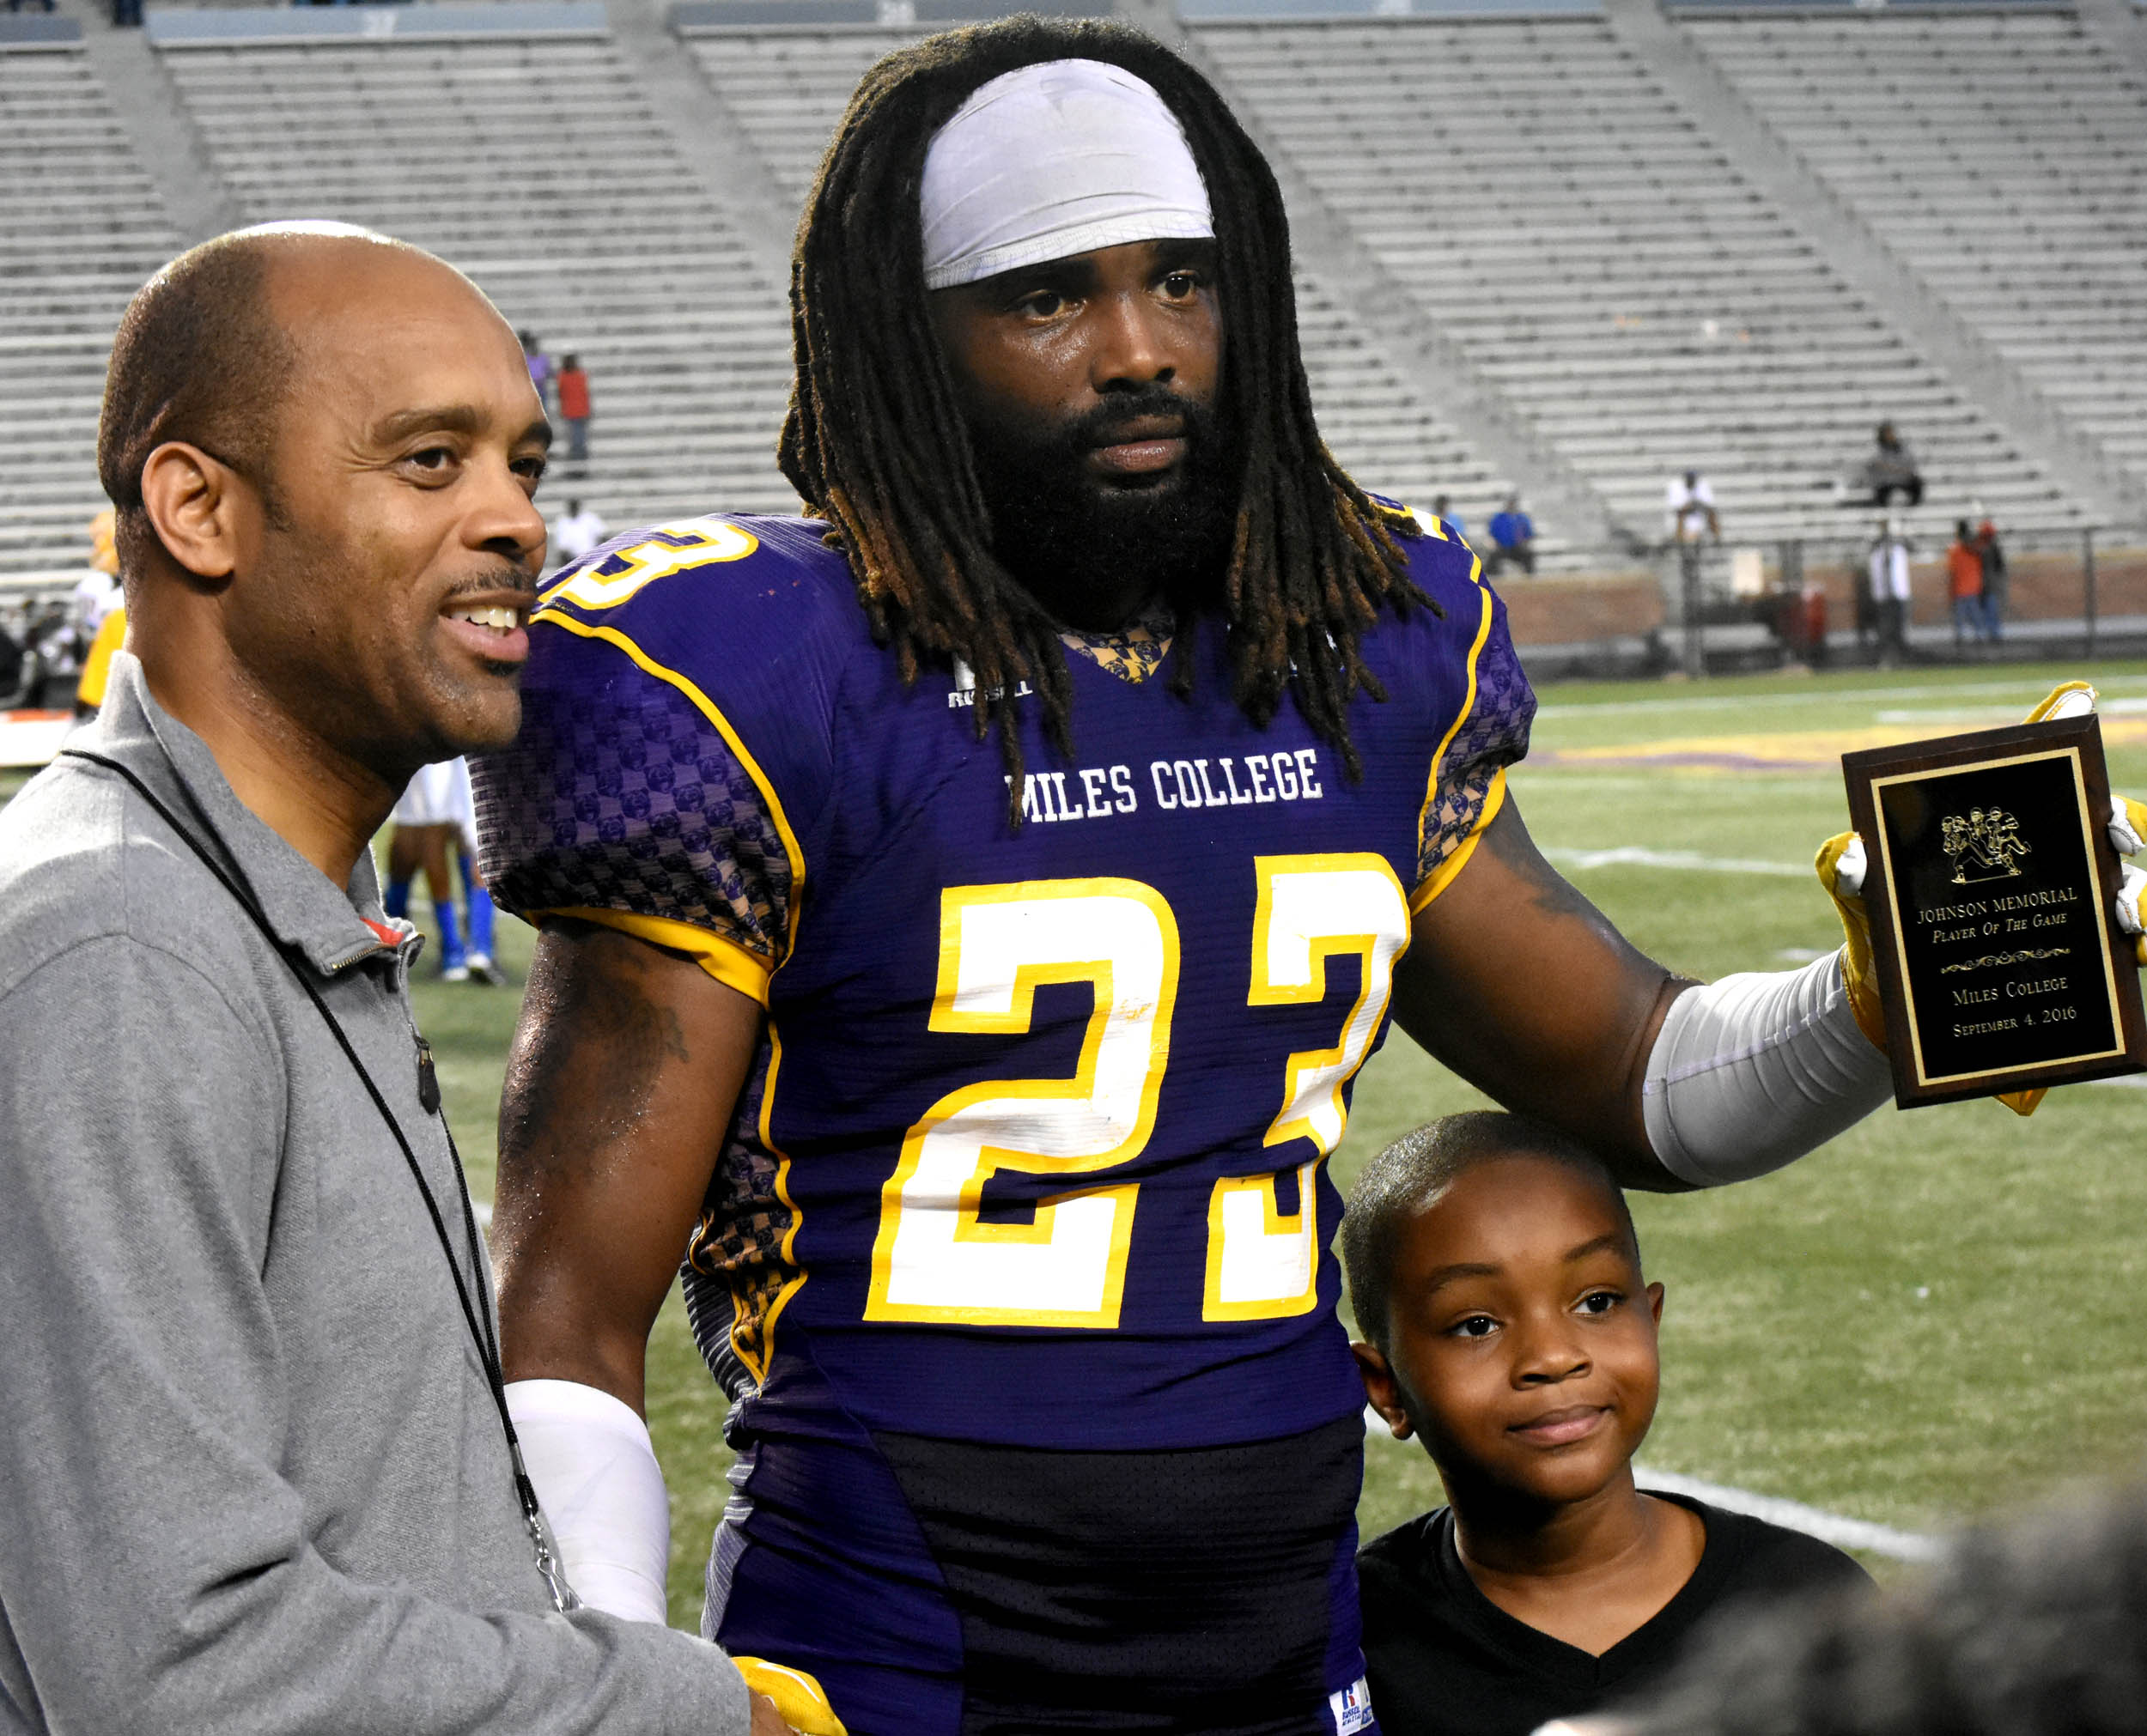 Miles College senior linebacker Emmanuel Ray earned most valuable player honors in the Labor Day Golden Classic on Sunday after the Golden Bears came from behind to beat Fort Valley State 34-21 at Legion Field. Ray receives the MVP award from Bessemer businessman Howard Johnson (left) owner of Johnson Funeral Home, who annually sponsors the MVP award. Johnson's 8-year-old son Michael is on the right. (Solomon Crenshaw Jr. photo).